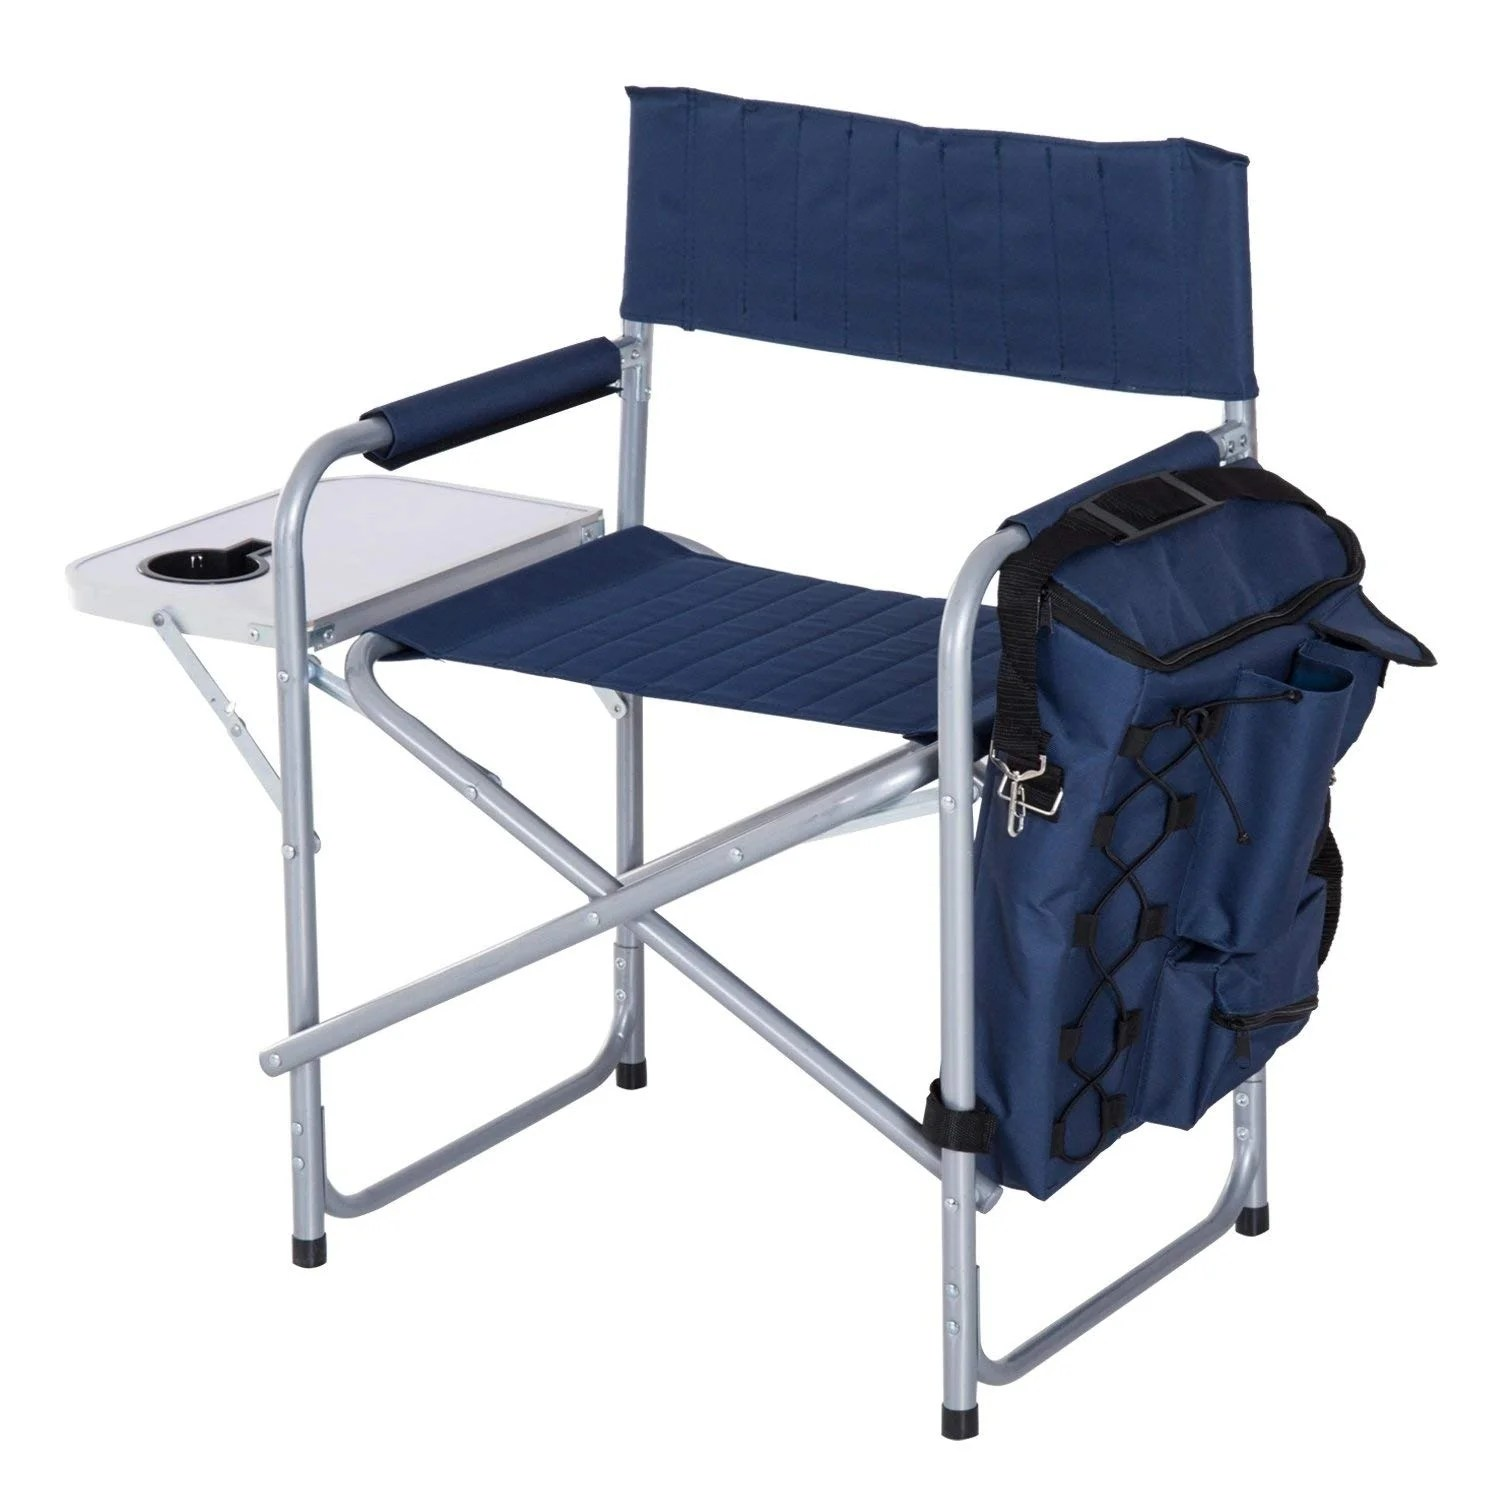 Folding Camp Chair With Side Table Outsunny Steel Director Folding Camp Chair With Side Table And Cooler Dark Blue